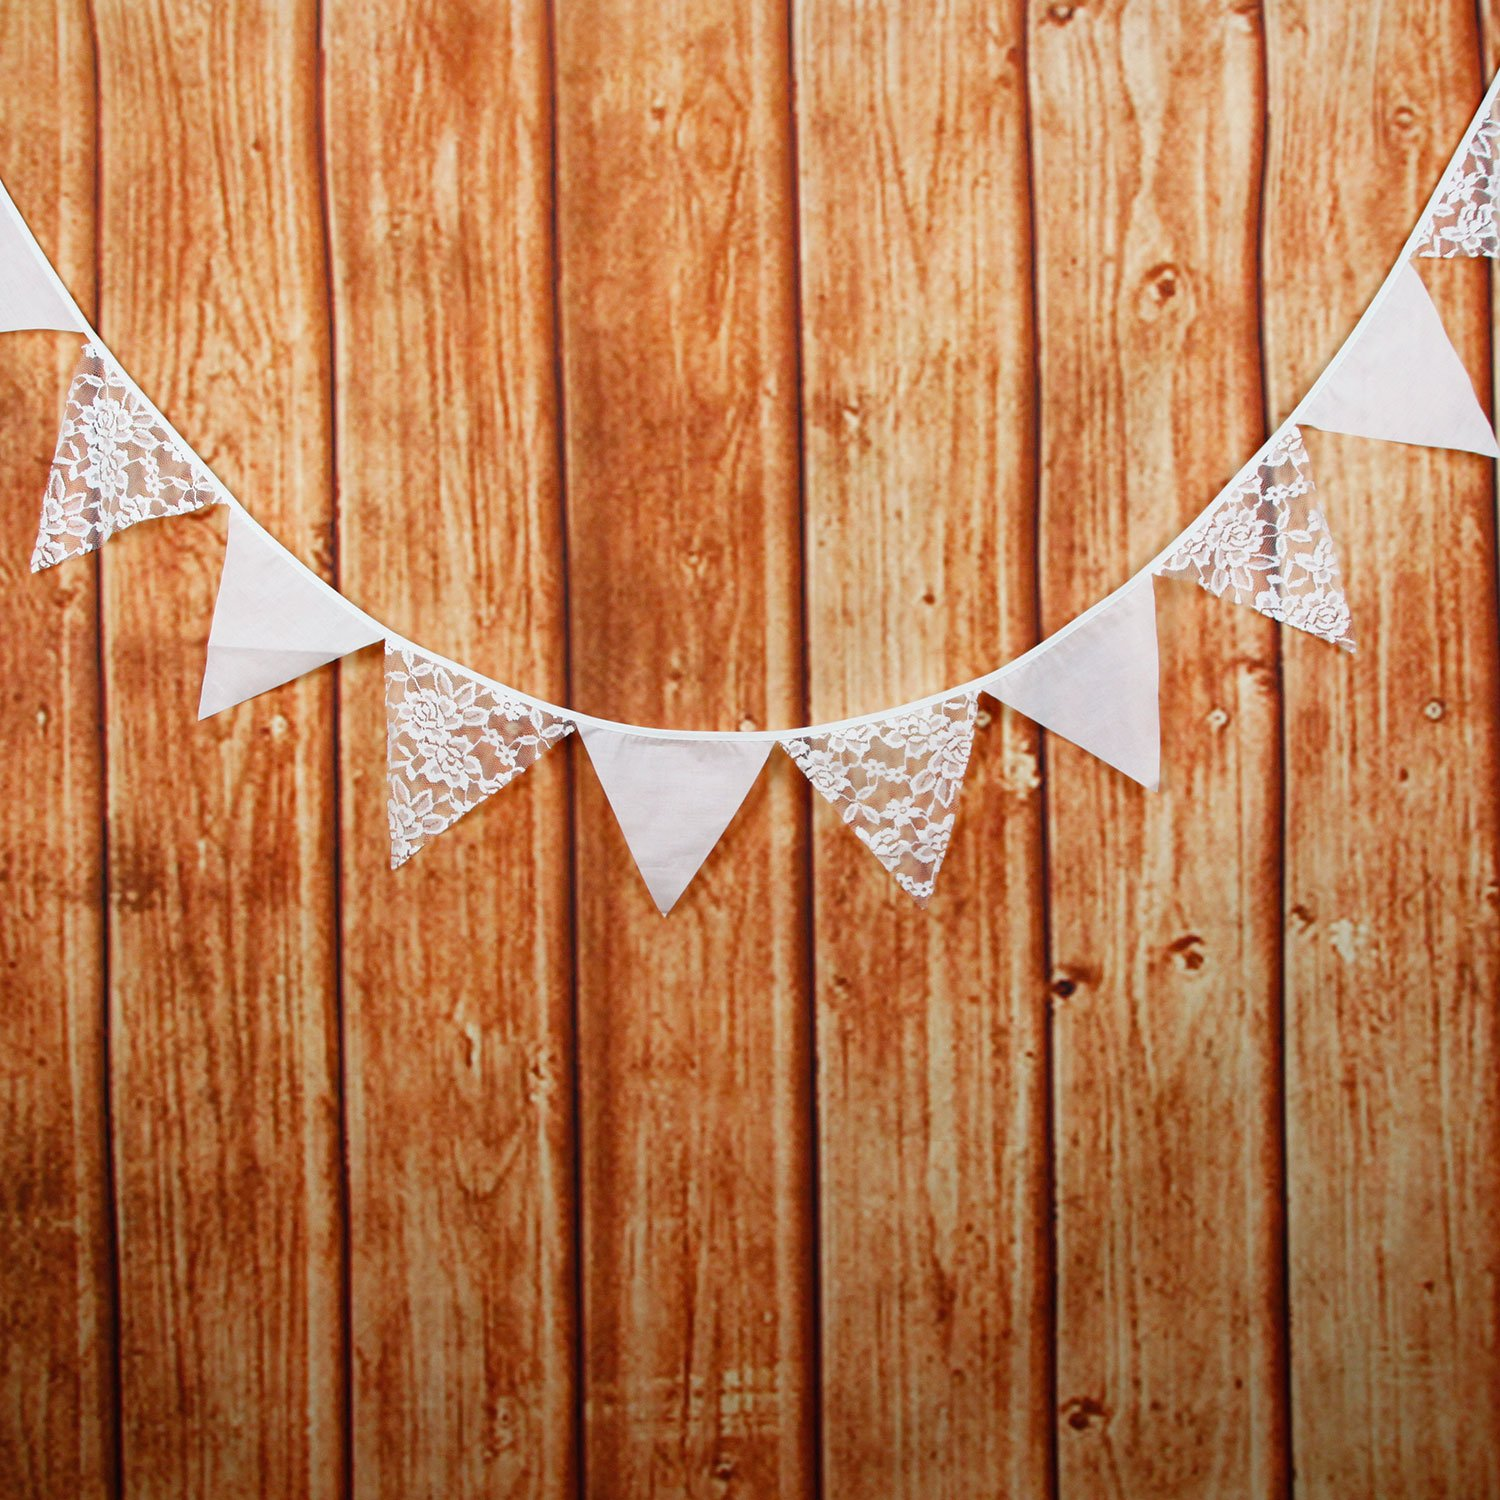 INFEI White Rose Flower Lace /& Cotton Fabric Flag Buntings Garlands Wedding Birthday Party Decoration Bridal Shower SuperSockMonkeys